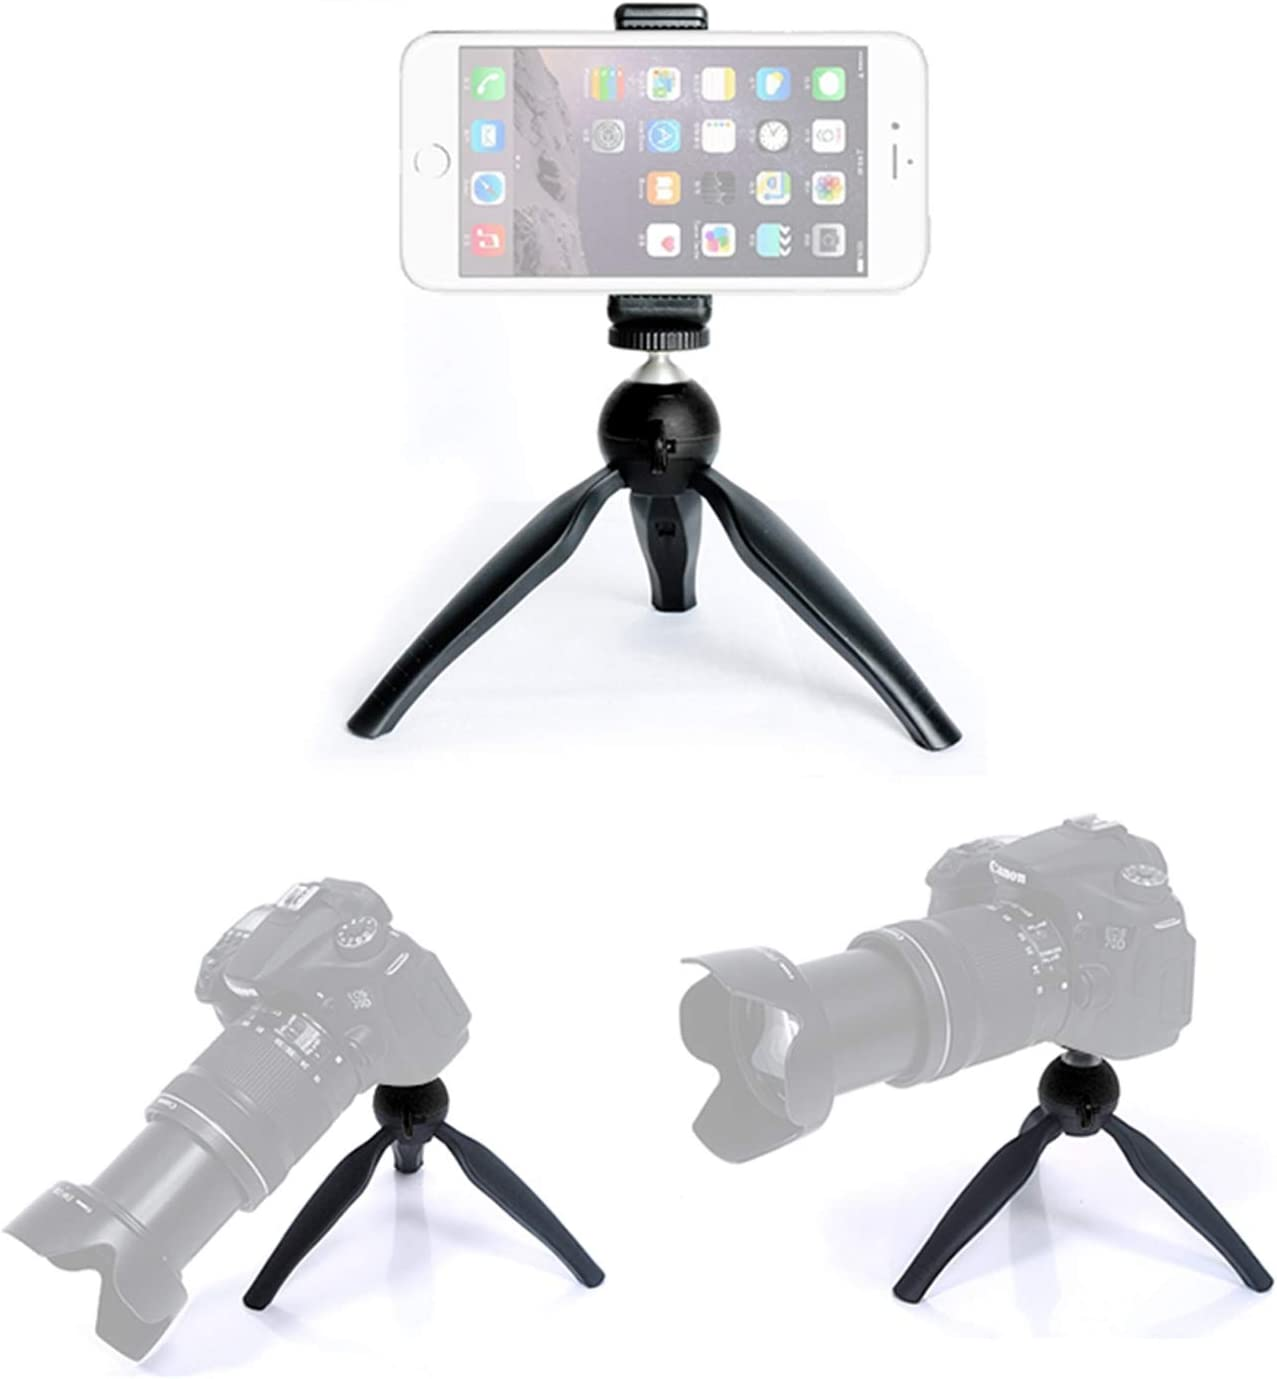 Semoic Camera Accessories Portable Handheld Camera Tabletop Tripod with Phone Holder for Mobile Phone Smart Phone(Black)